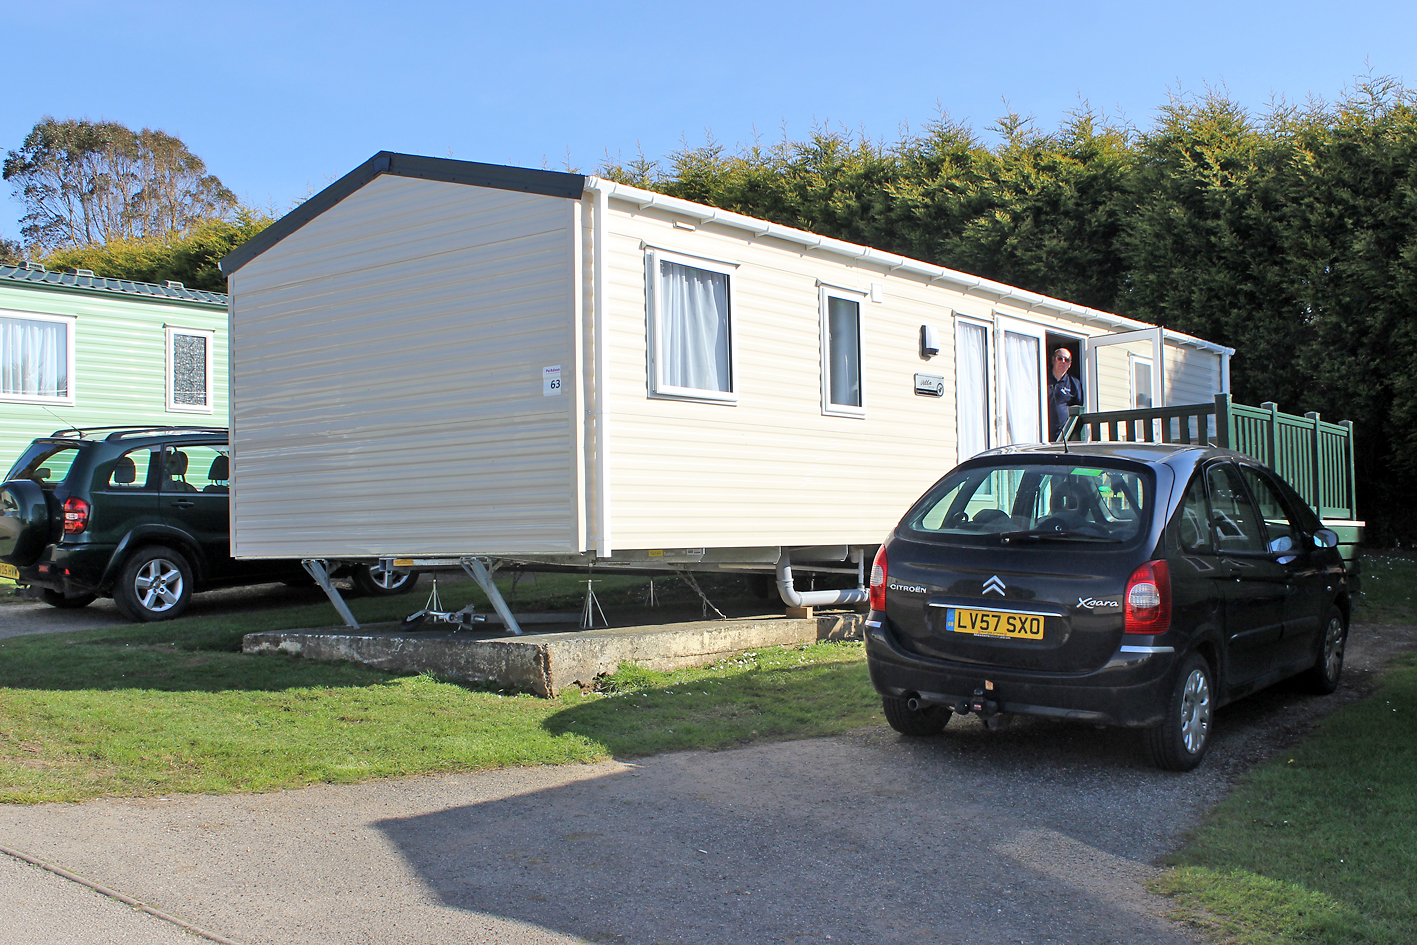 Our home for the week, the Coverack caravan